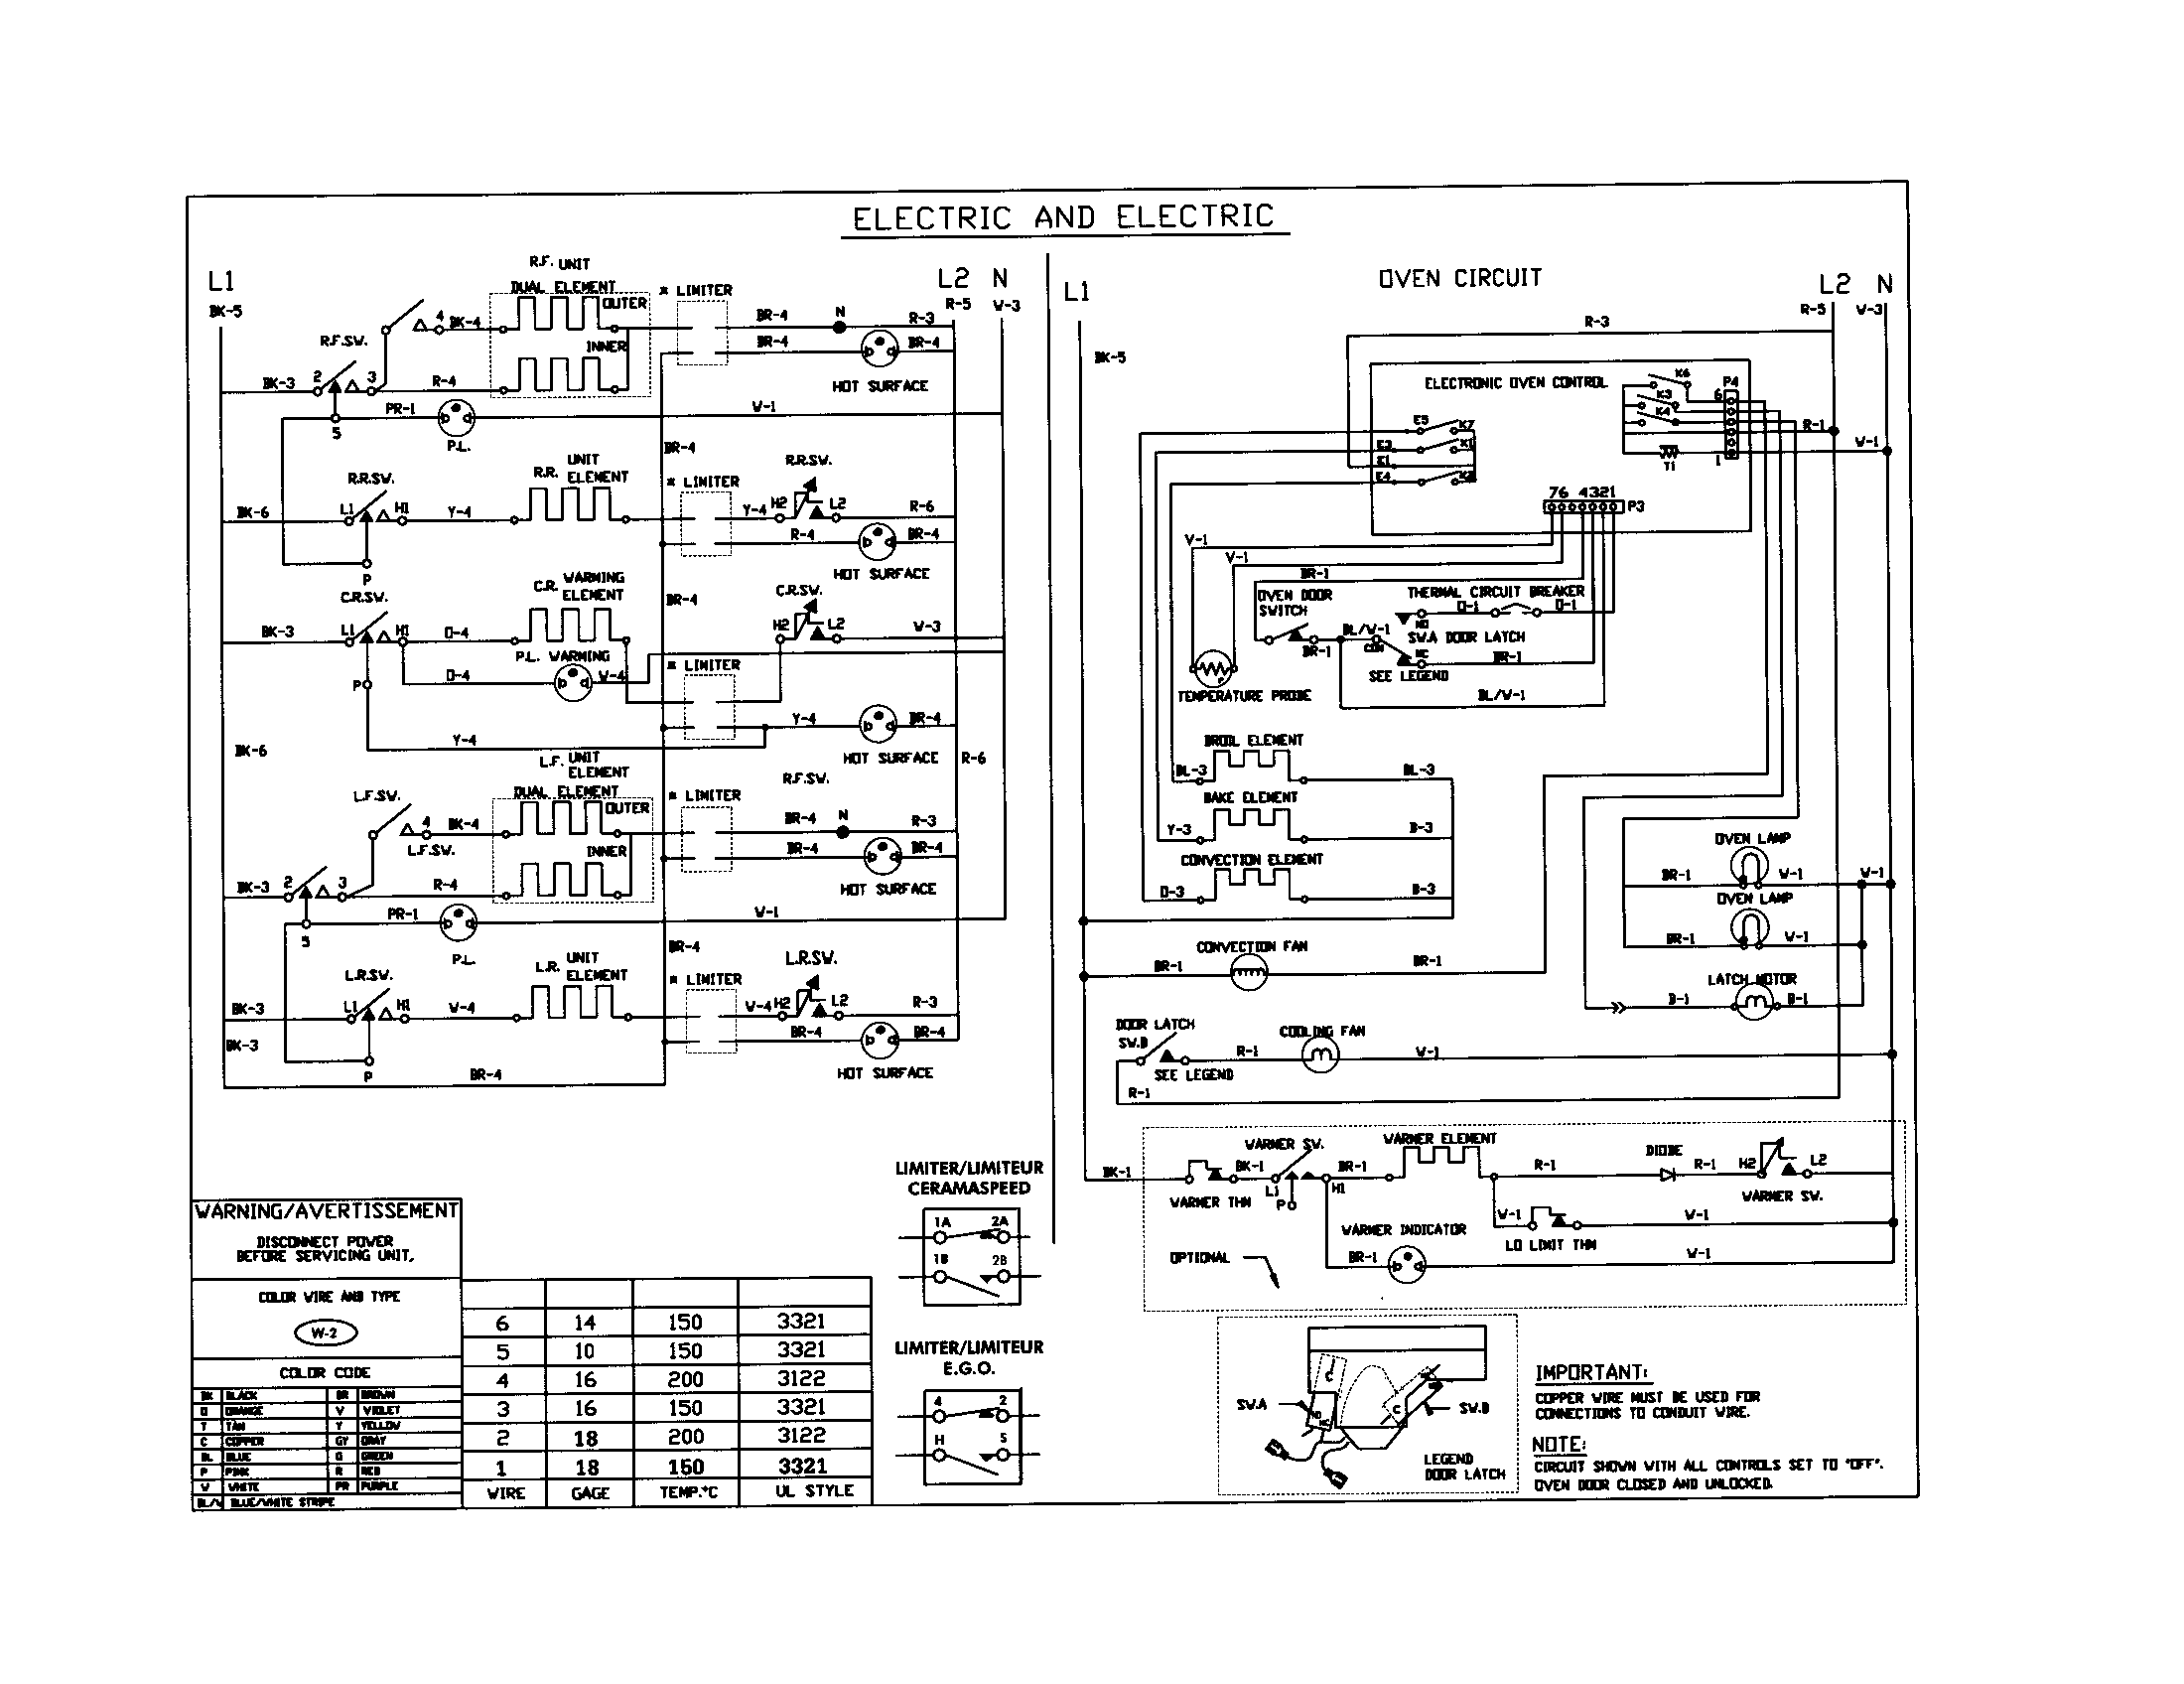 P0050376 00005?resize\=665%2C512 kenmore dryer model 11087872602 wiring diagram kenmore wiring Kenmore 110 Washer Wiring Diagram at eliteediting.co